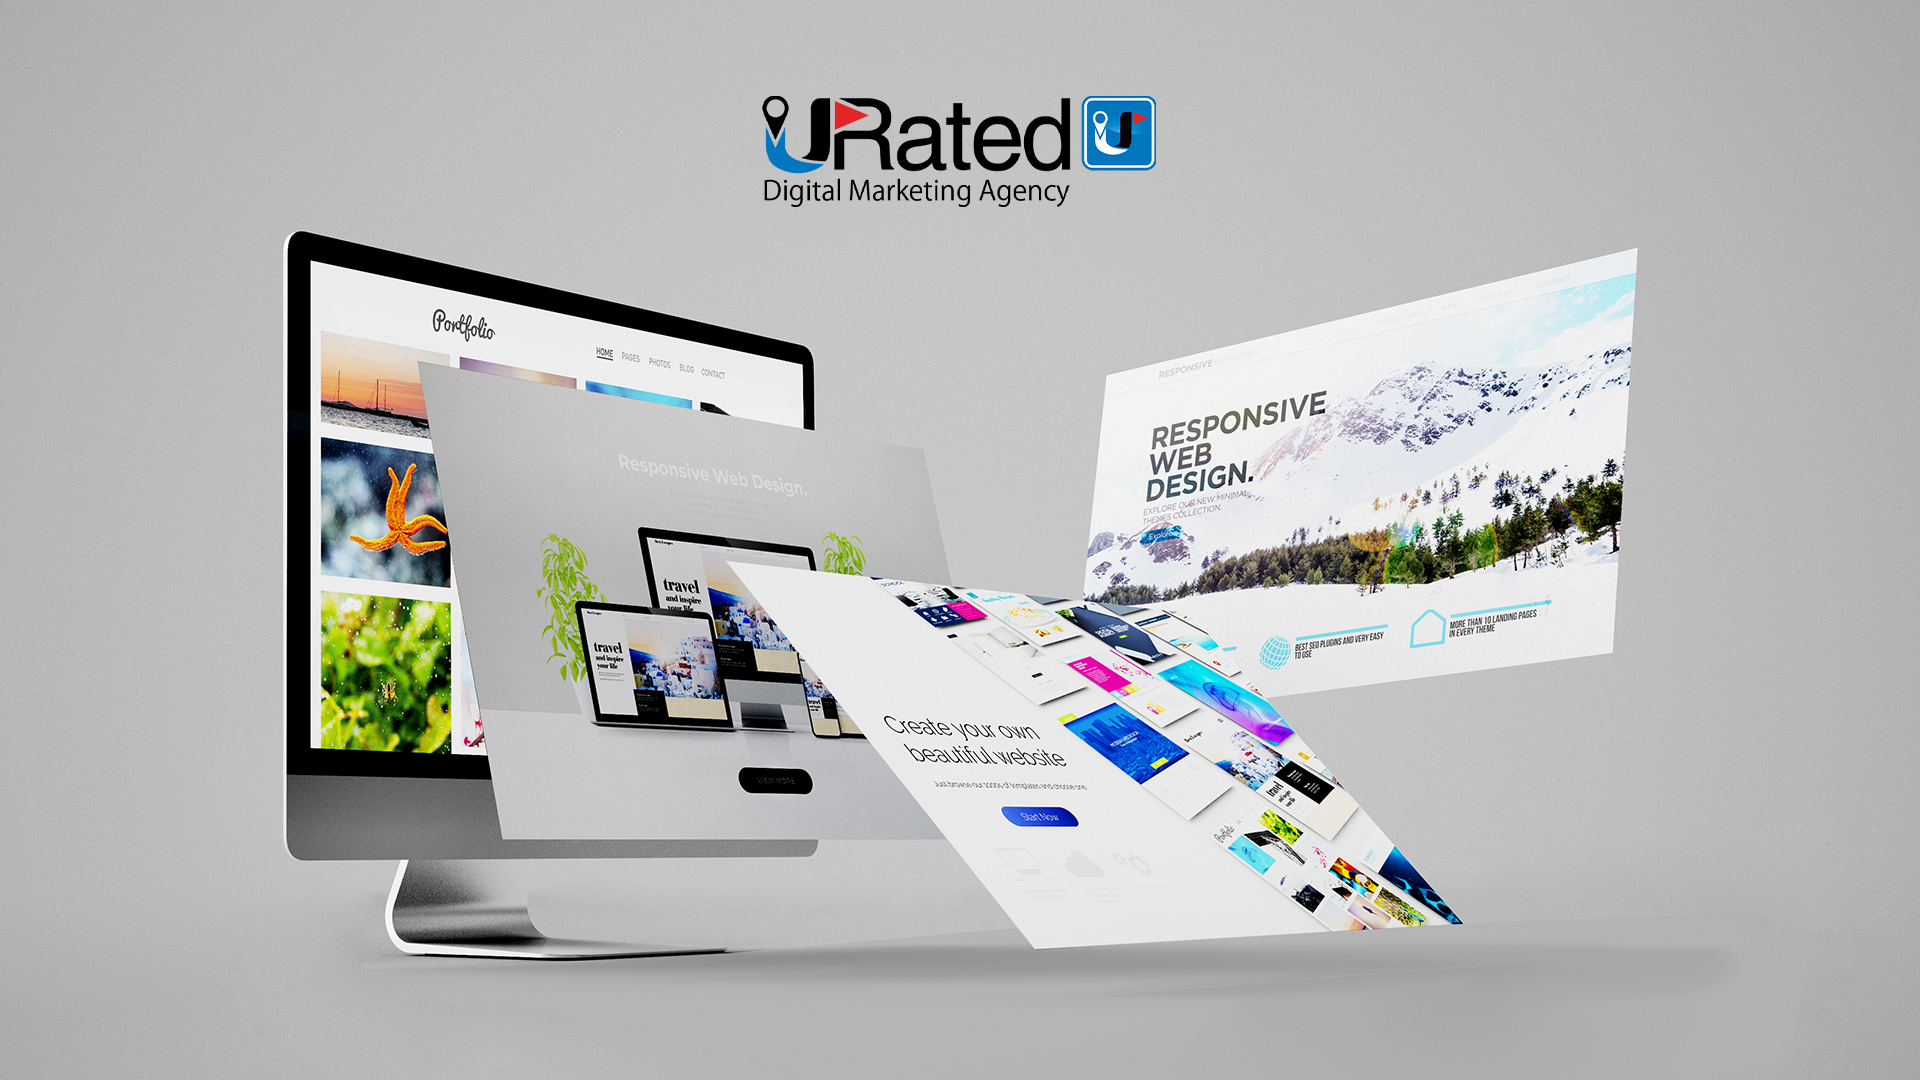 A CHOICE OF TRENDY OR CUSTOMIZED WEB DESIGN